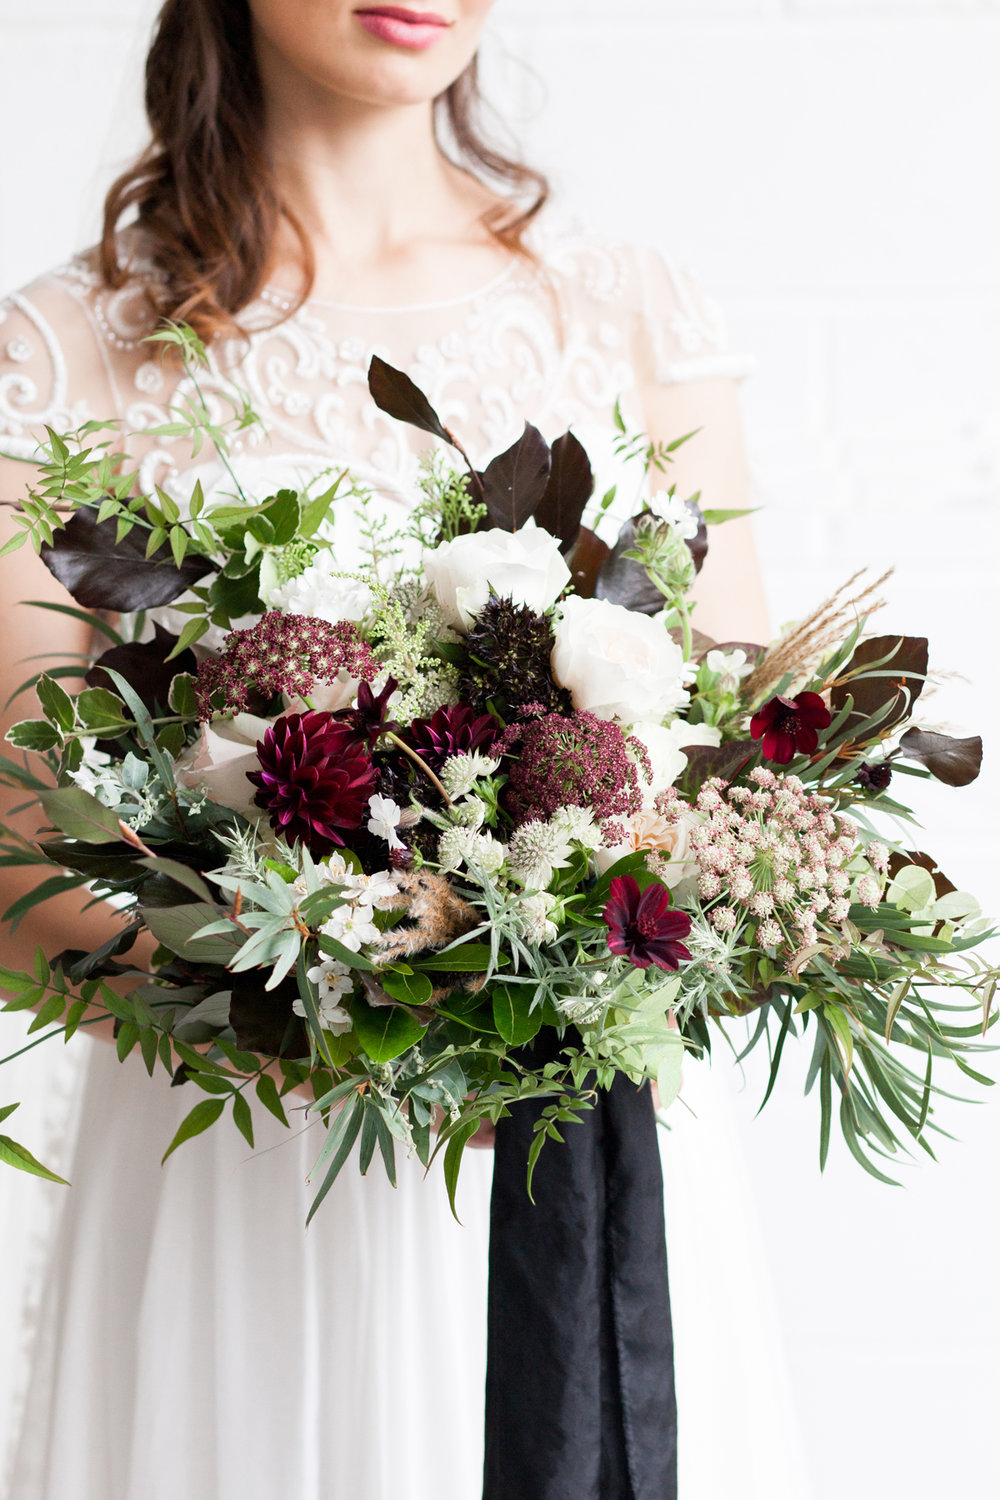 Lose Burgundy Bridal Bouquet - Industrial Warehouse Wedding -- The Overwhelmed Bride - Wedding Blog